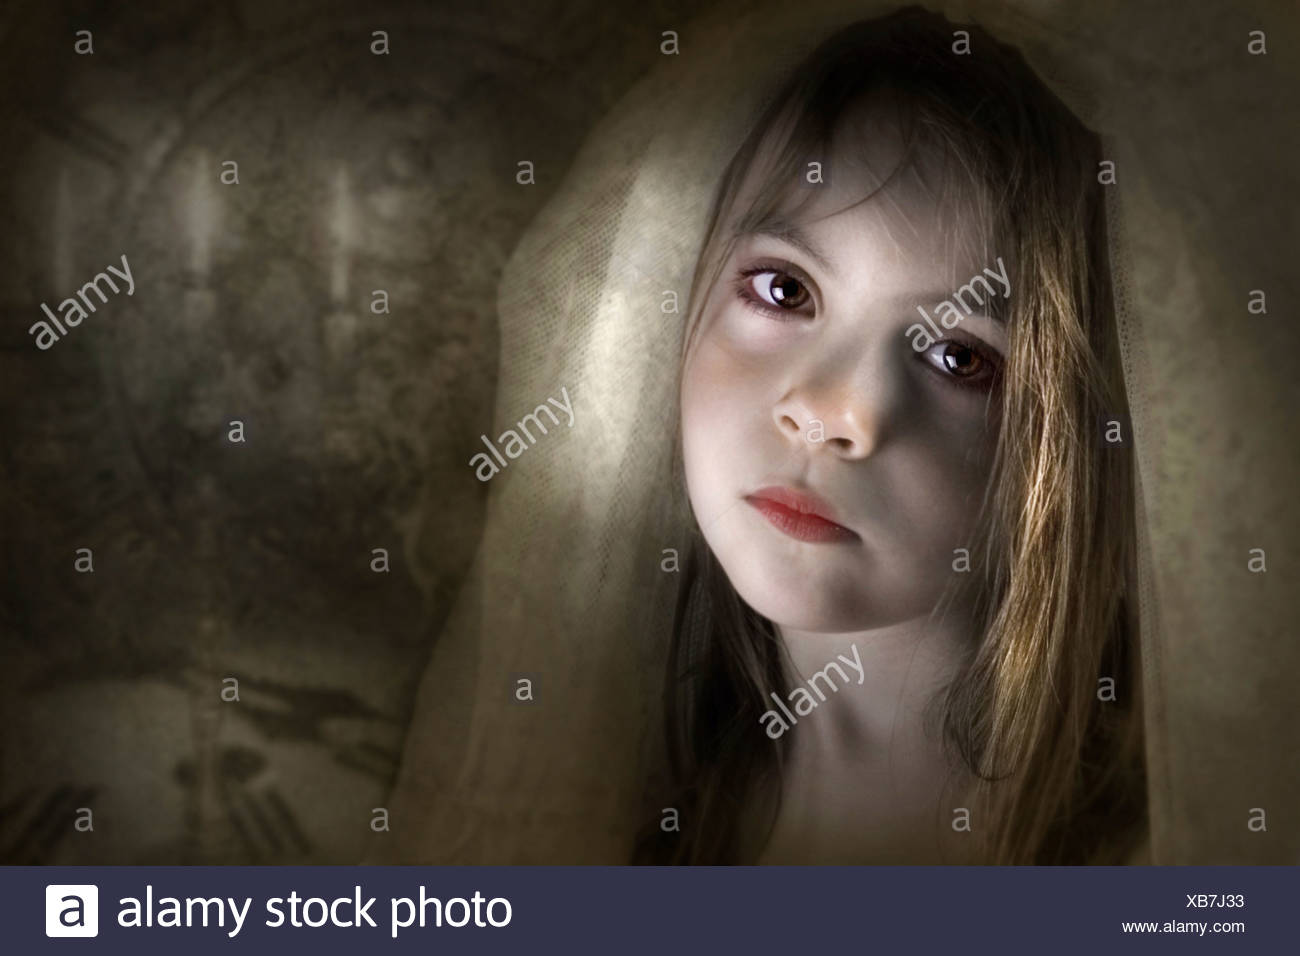 young child dressed in a veil looking at the camera with sadness or sorrow in an ambient setting - Stock Image